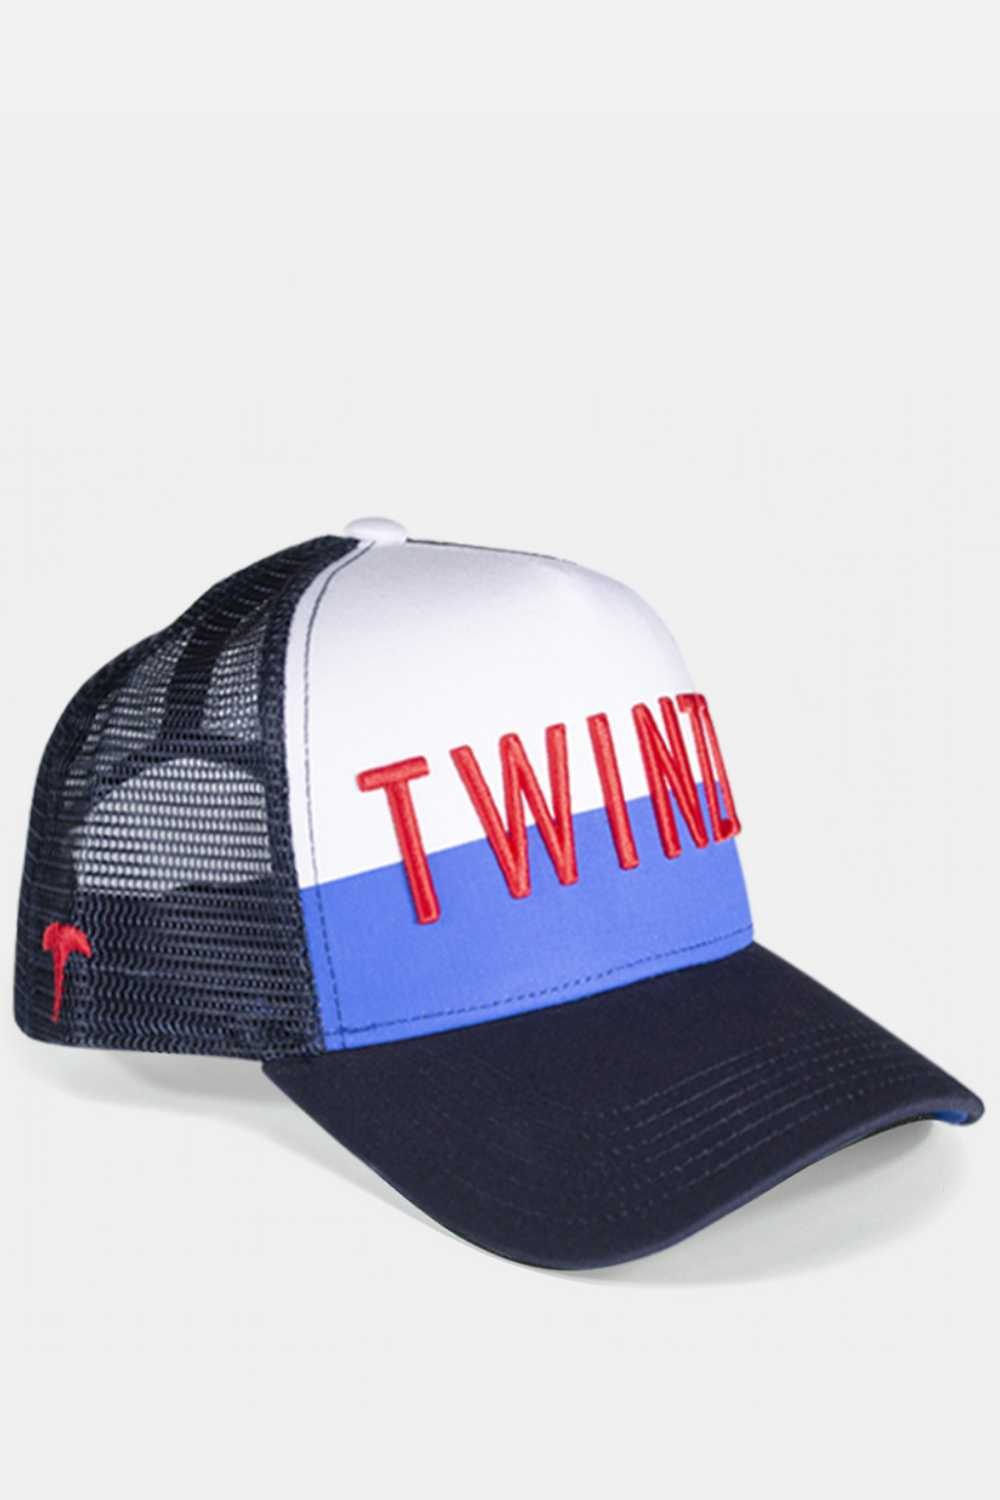 Twinzz 3D Mesh Trucker Cap -  Navy/White/Red